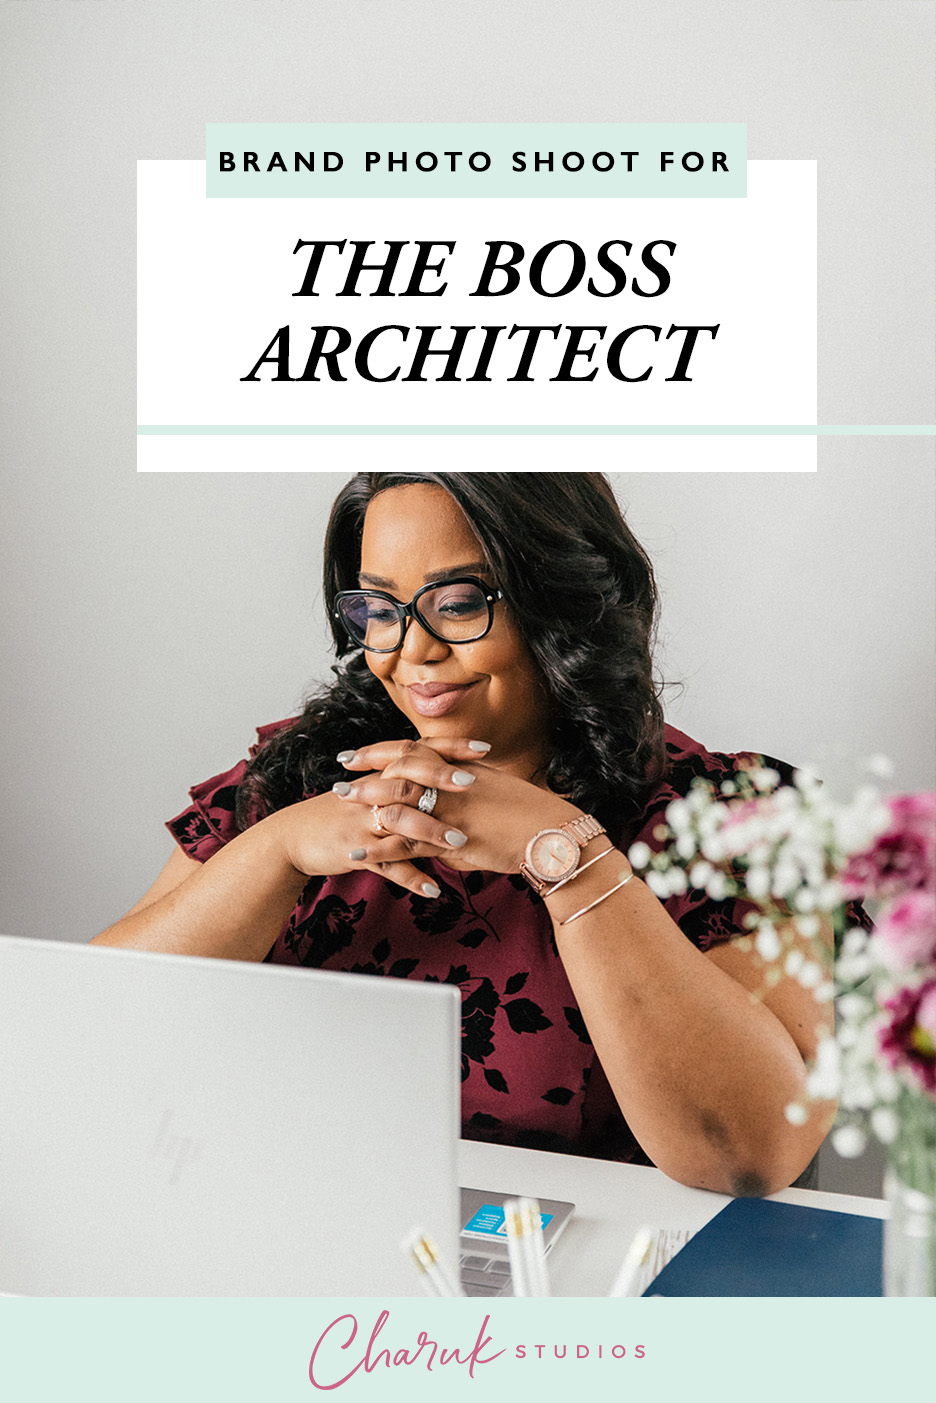 Brand Photo Shoot for The Boss Architect by Charuk Studios